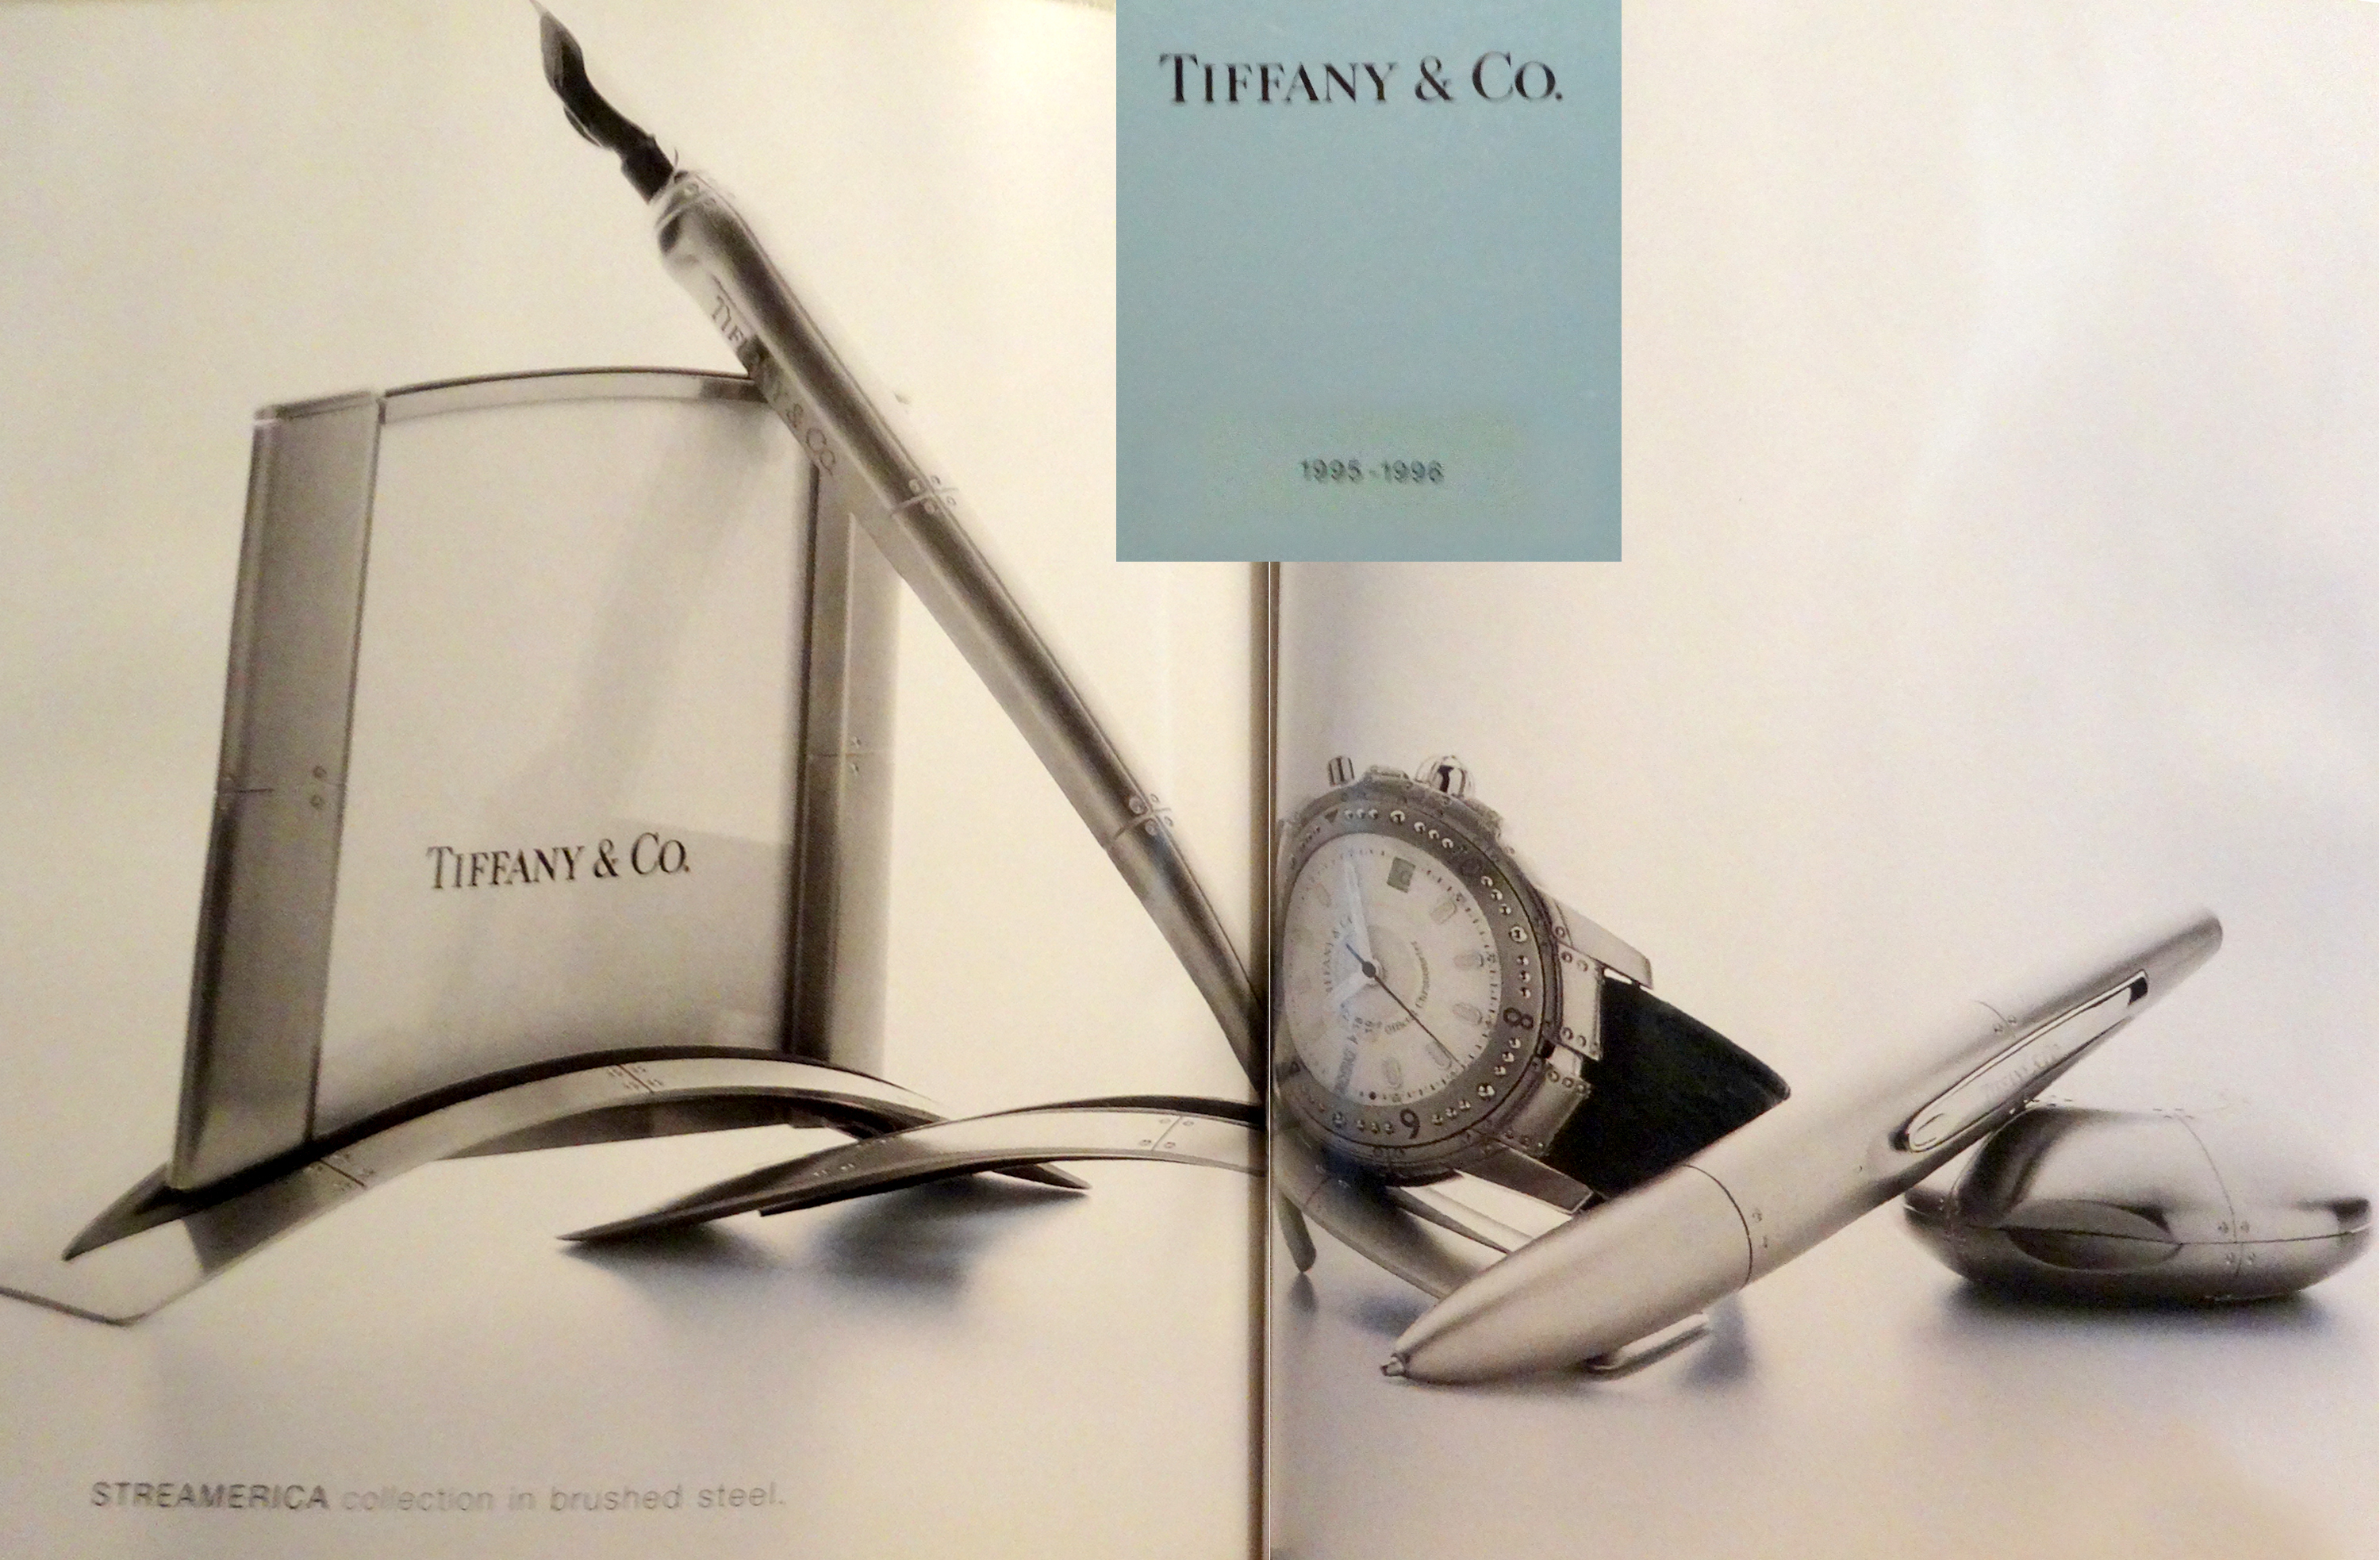 A Page from a 1995 Tiffany & Co. Blue Catalog showcasing Streamerica Stainless Steel Airframe Picture Frame Medium, Airframe dipping ink pen with stand, Automatic Watch with leather band, Ballpoint Pen, and Perisphere Nesting Box.